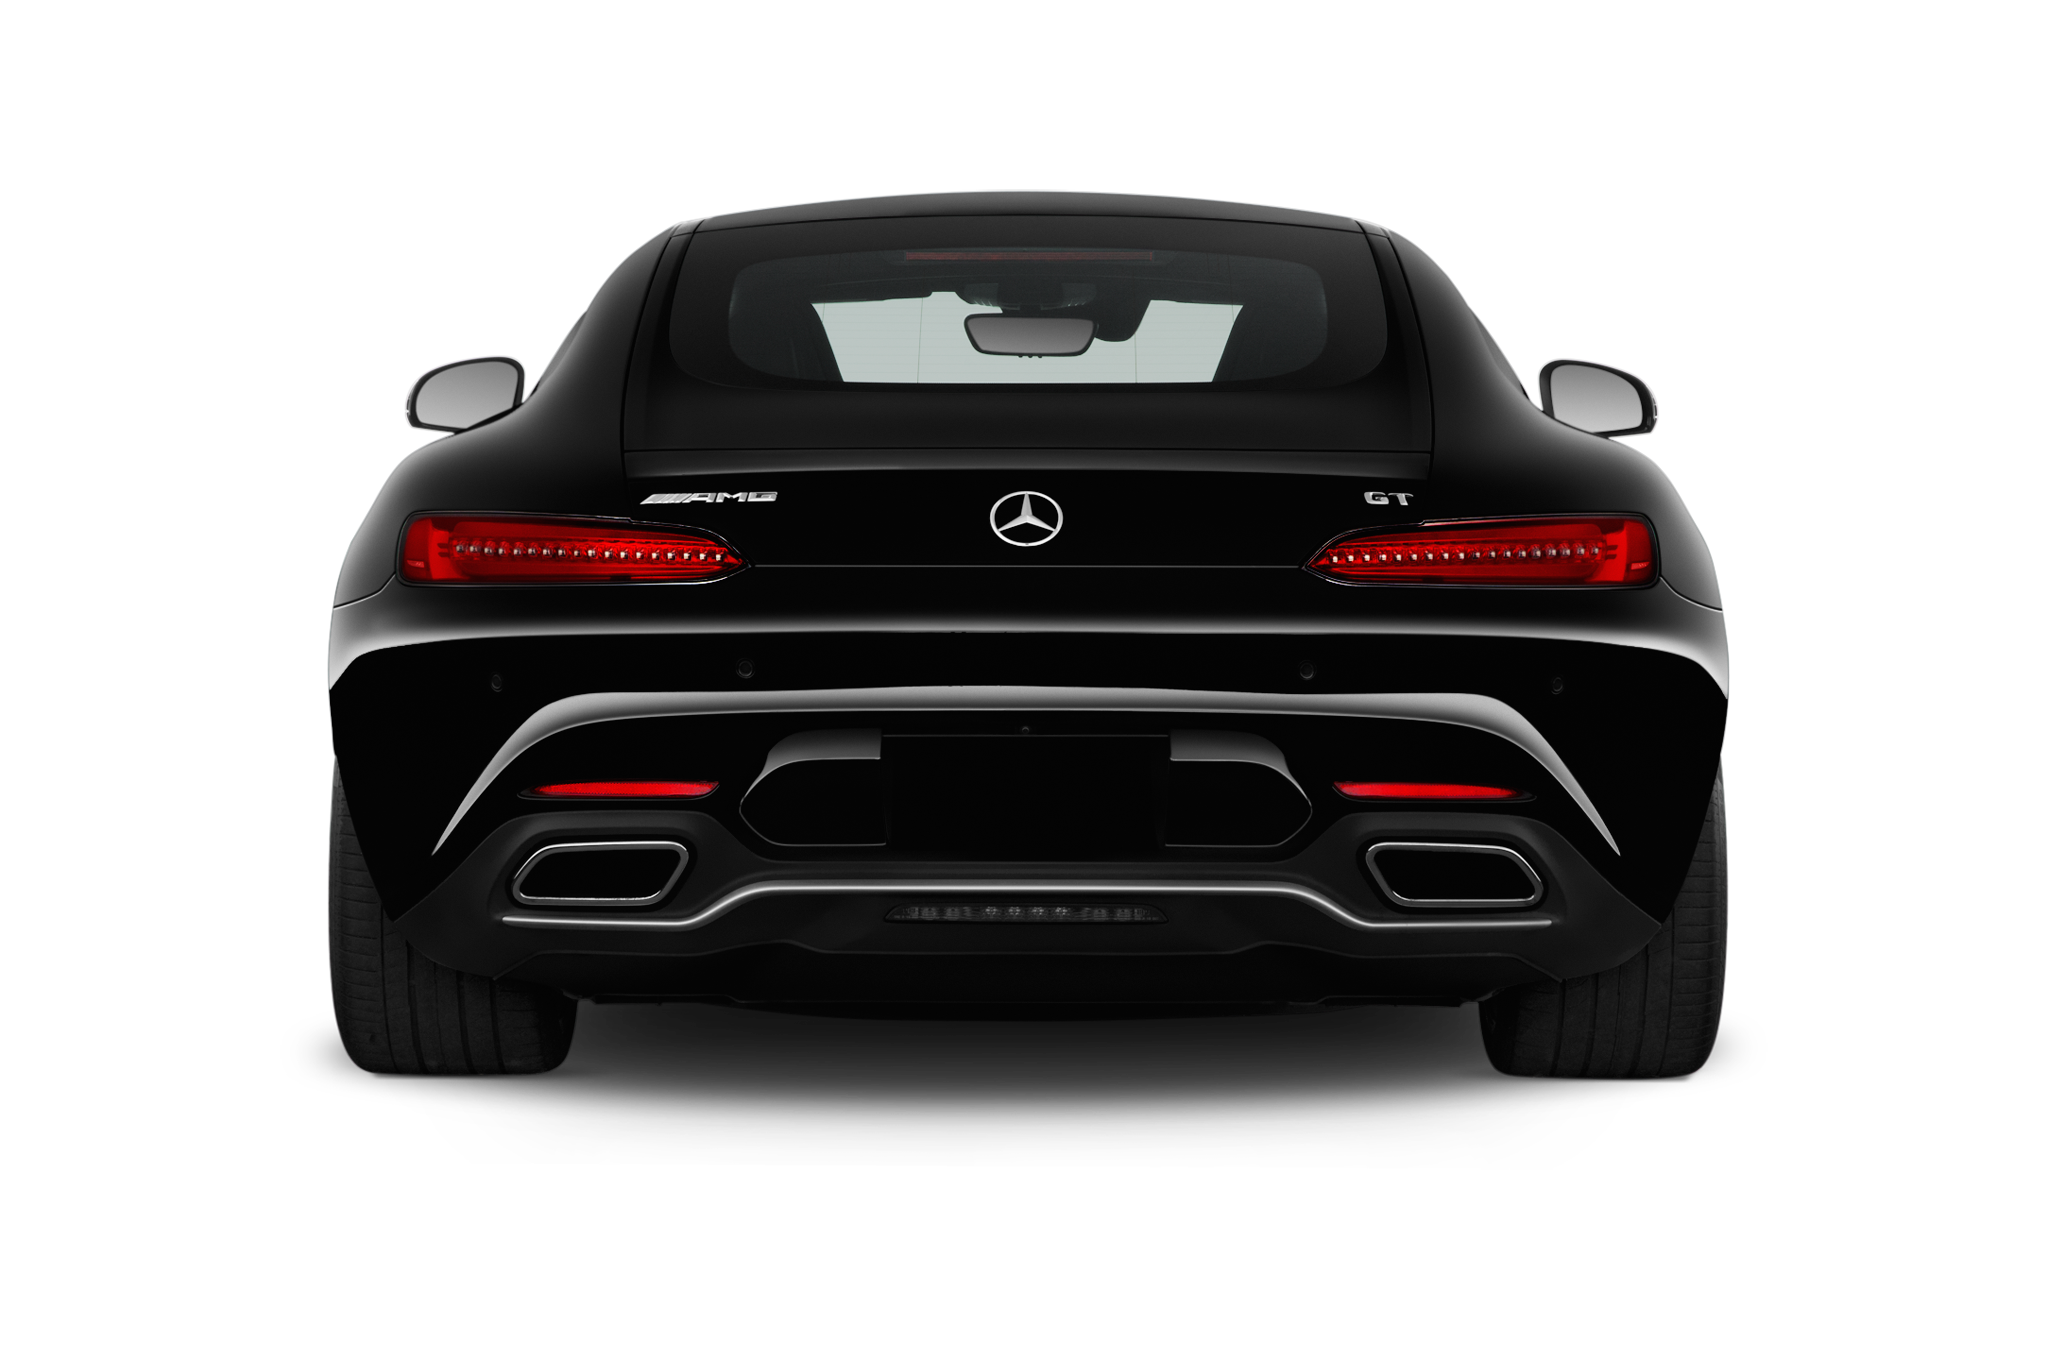 2017 Mercedes Benz Amg Gt Msrp 2019 2020 Top Upcoming Cars